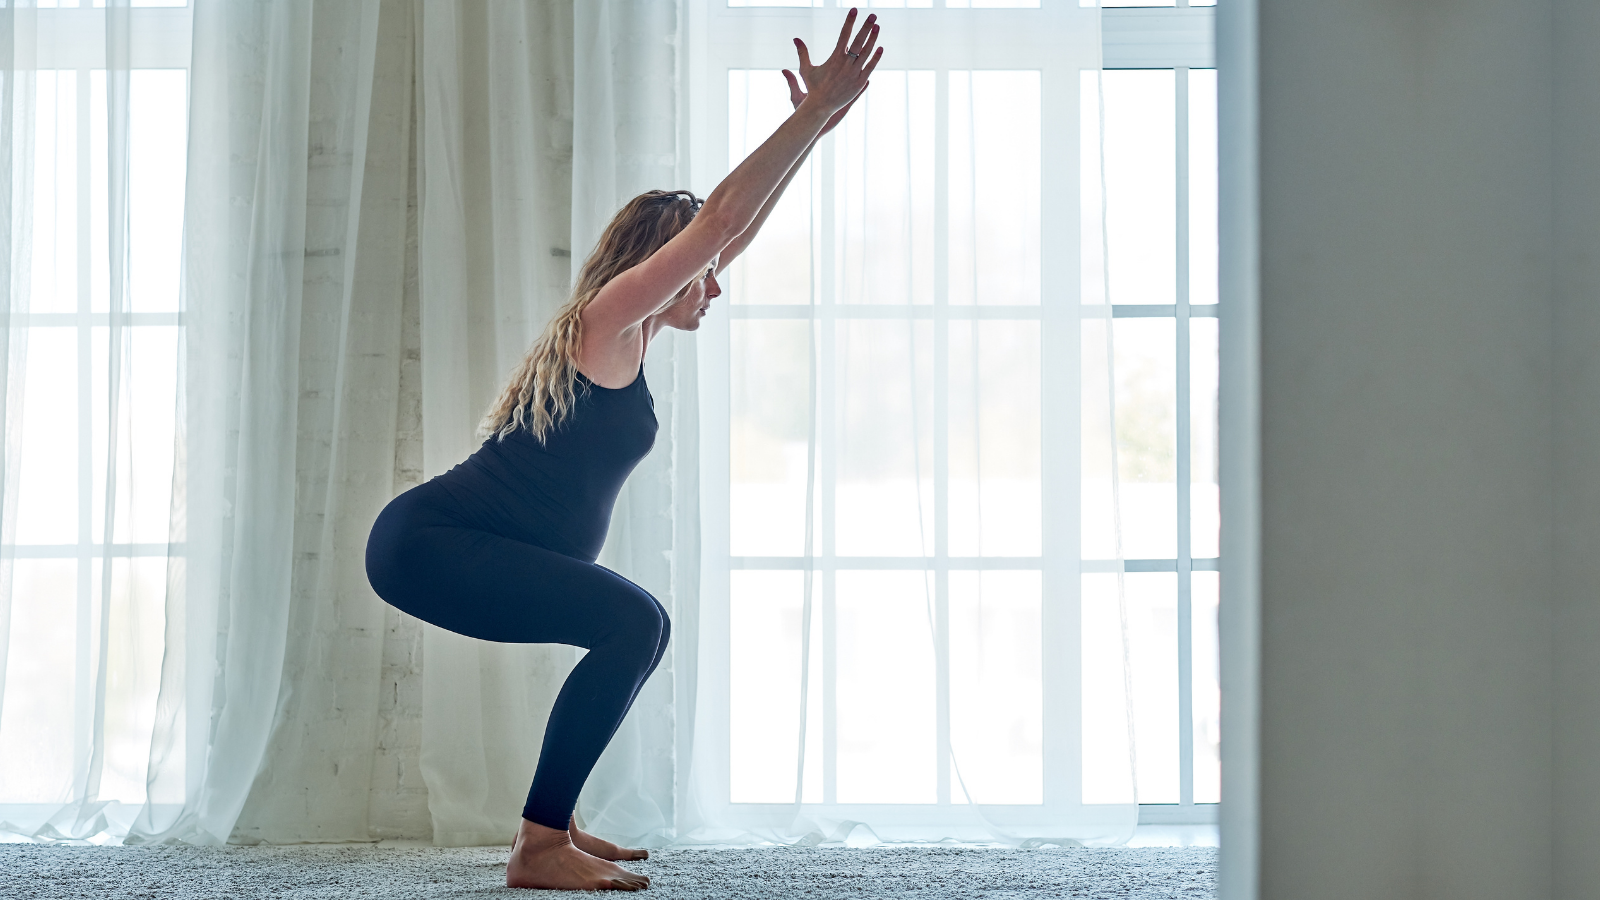 Pregnant woman practicing yoga and meditation in home